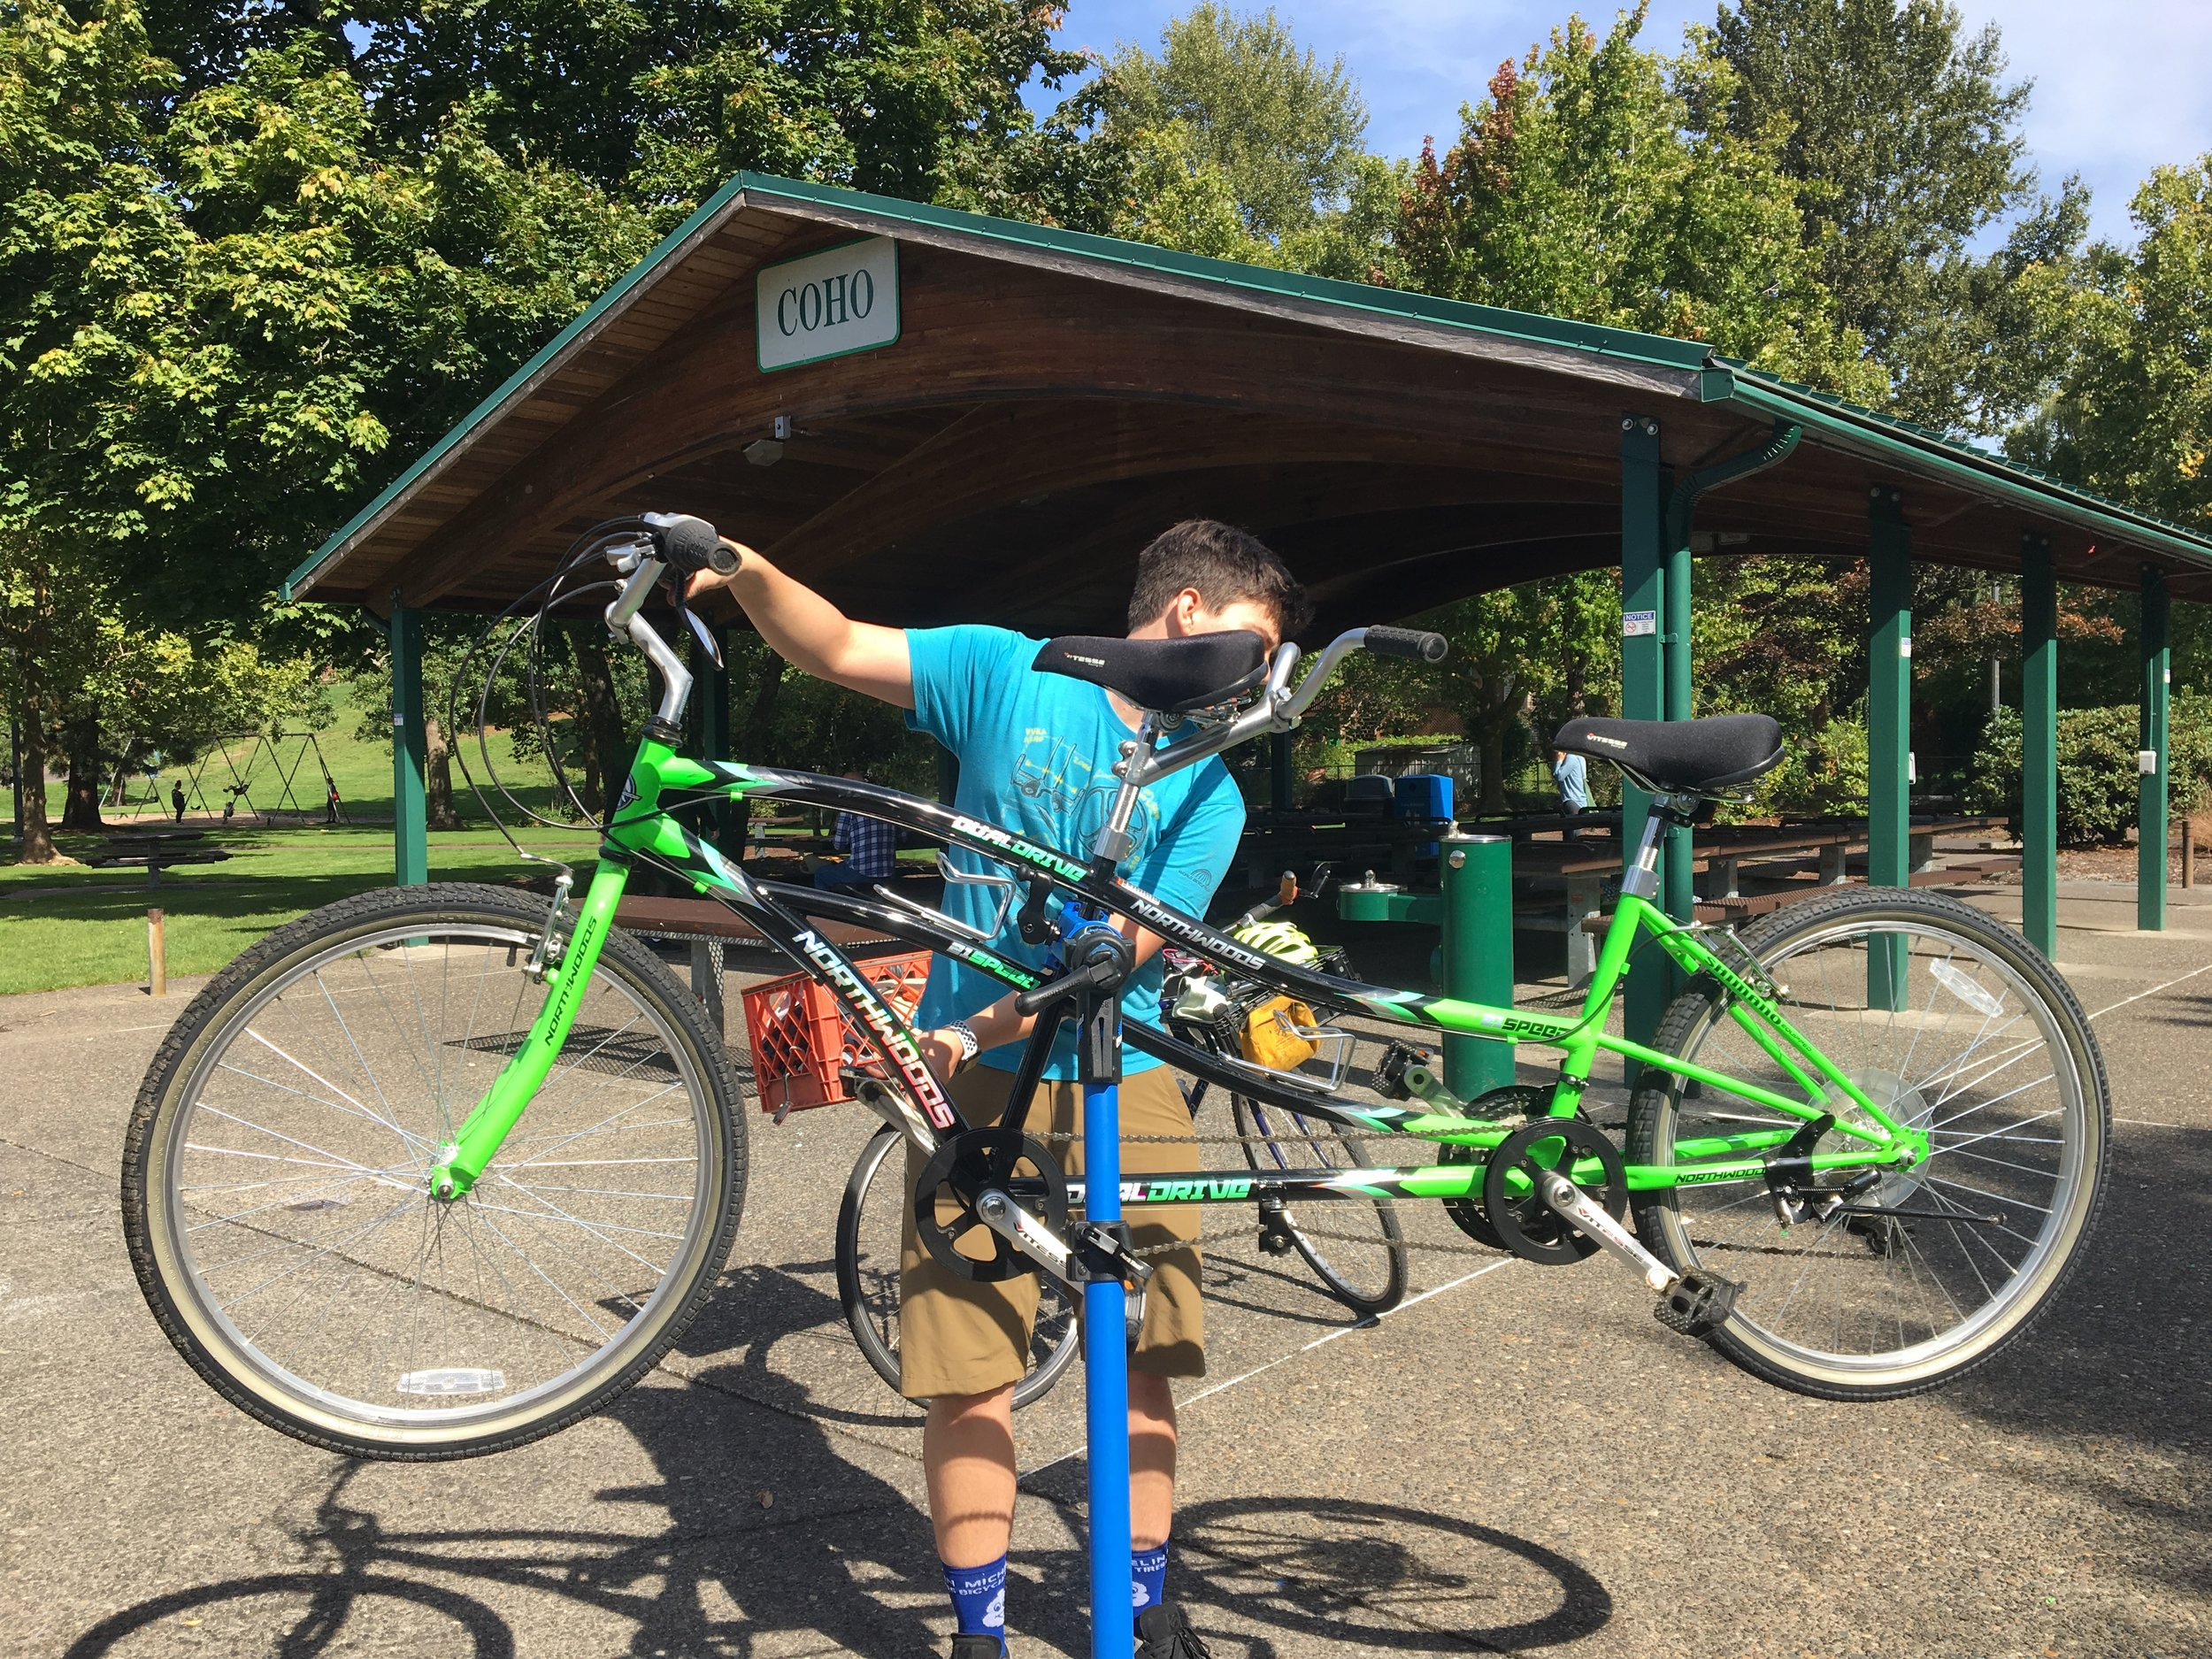 Greg, a B4H staffer, demonstrating the capacity of our mobile repair stand on a tandem bike.